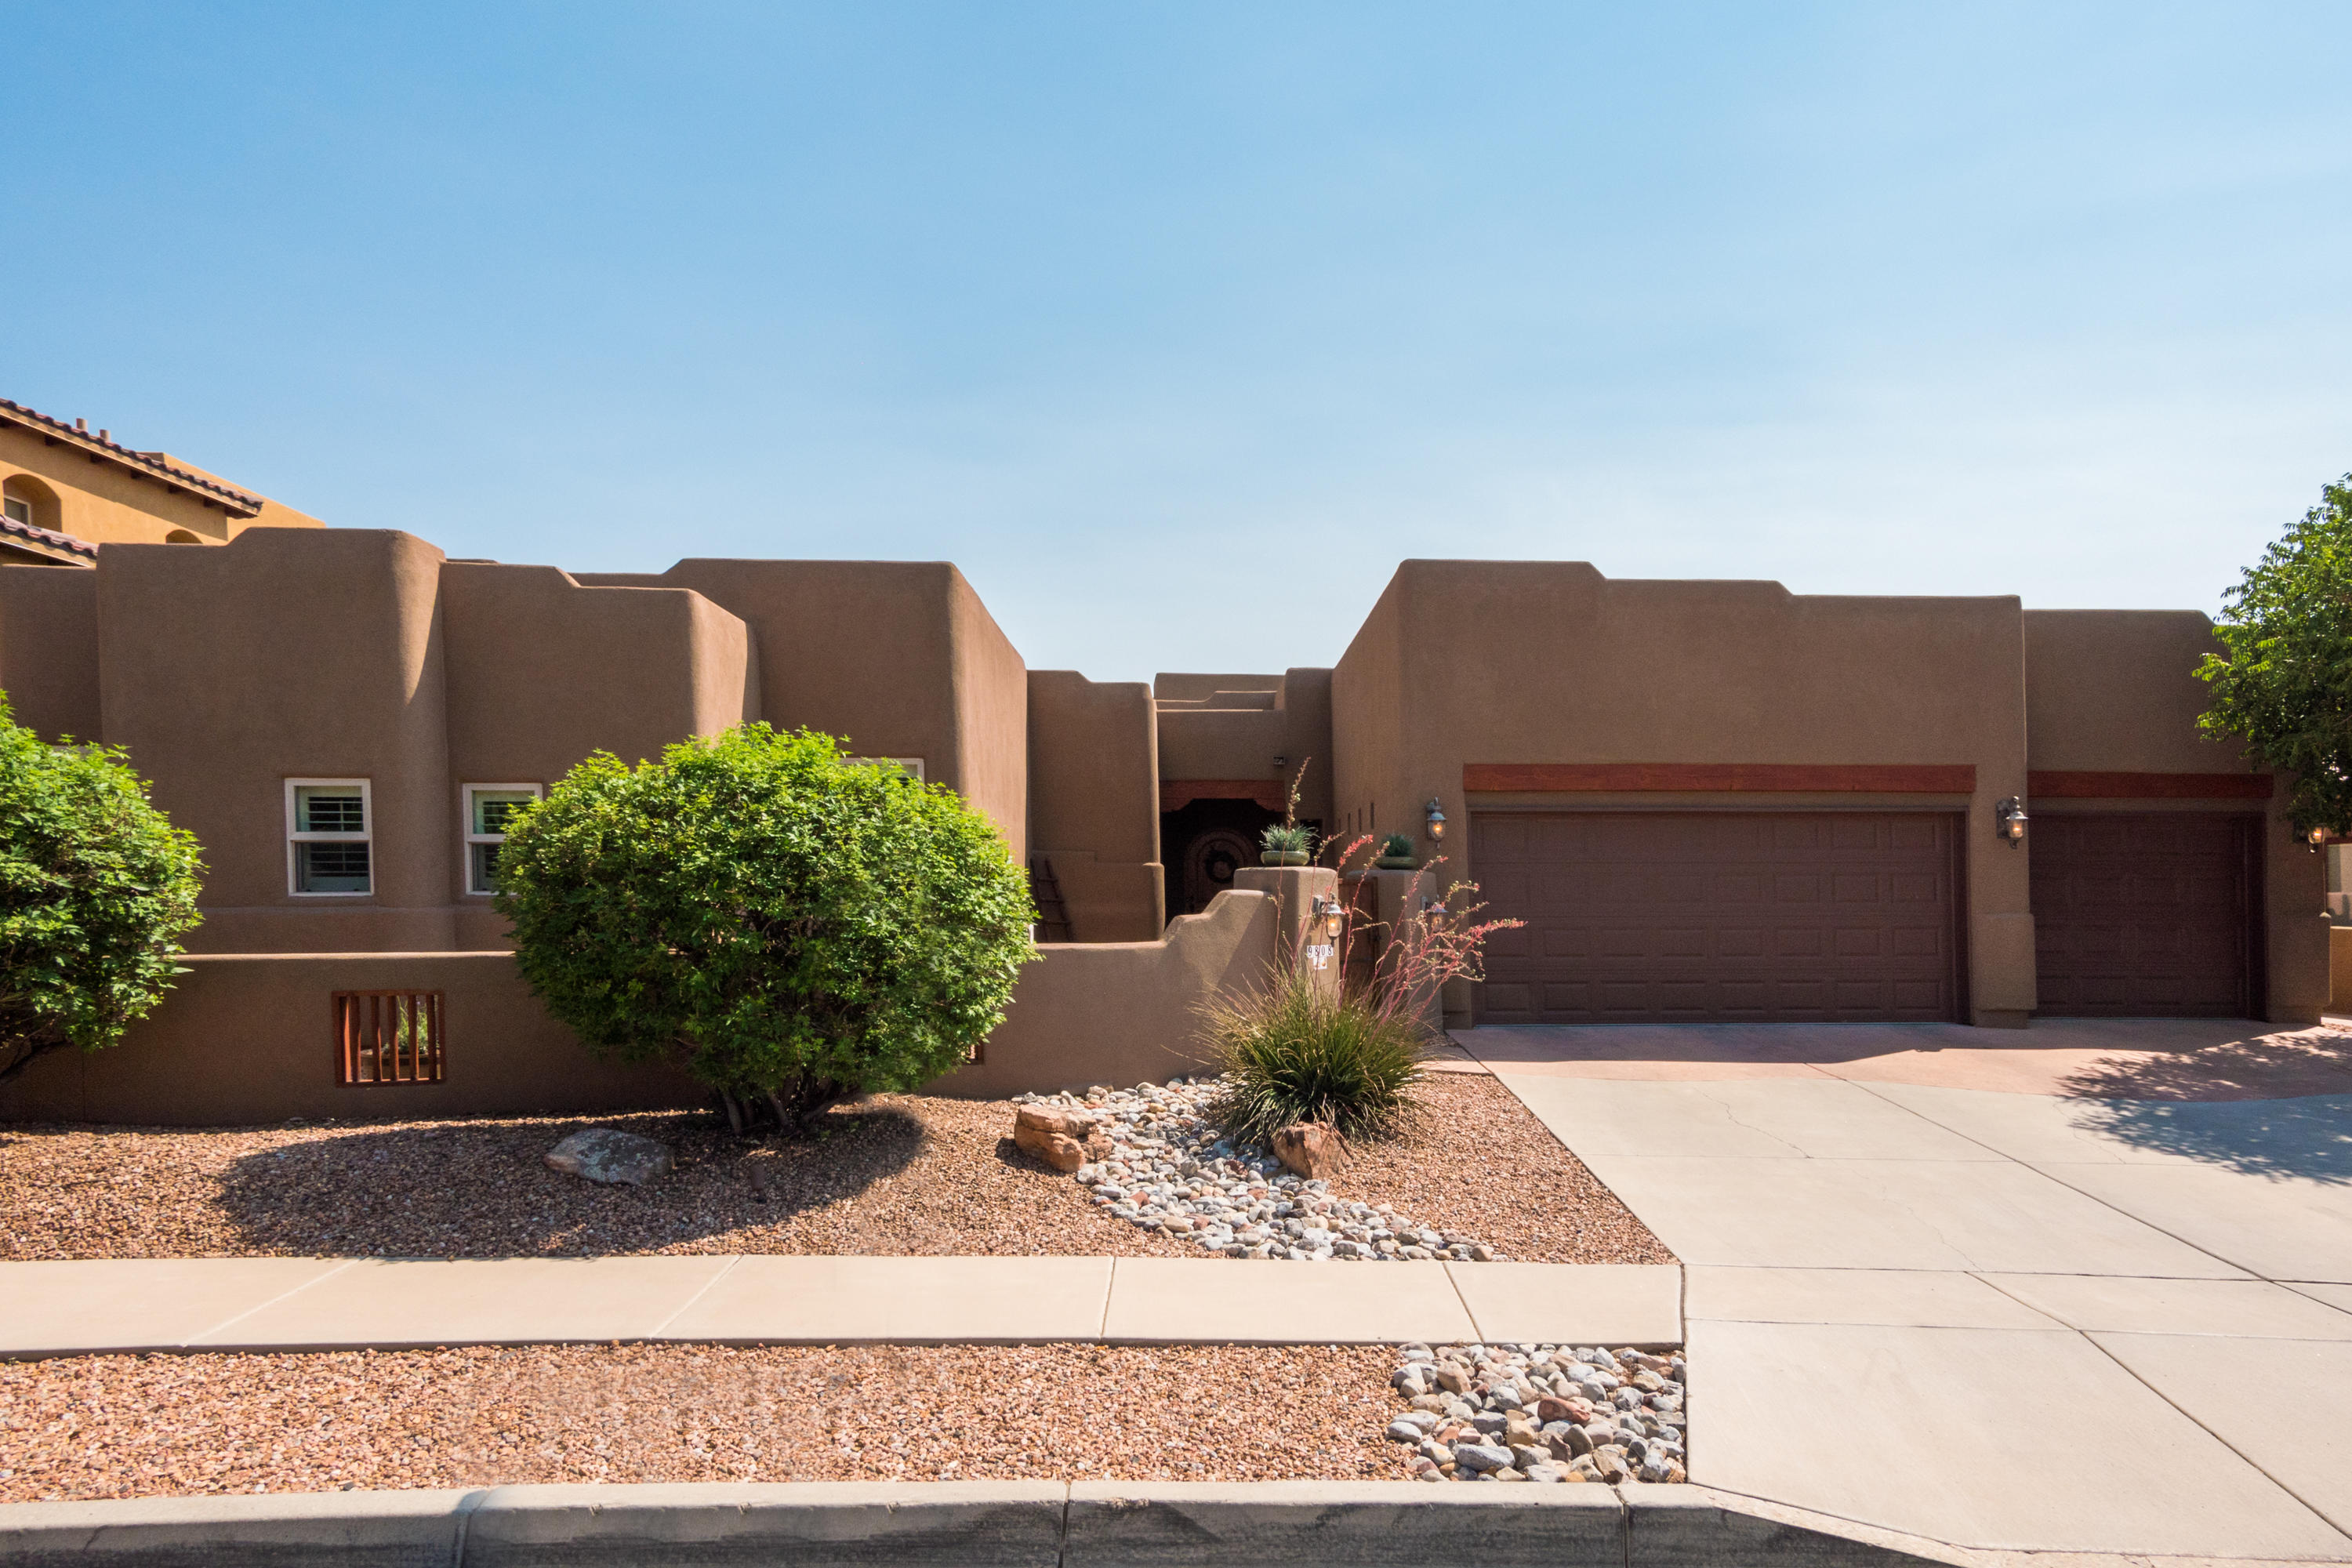 WOW, Custom home in exclusive Ocotillo gated community in North ABQ Acres now Available! Over 100k in upgrades make this home a show stopper! You'll be impressed with the Stained concrete floors, stacked stone, hardwood kitchen cabinets, granite countertops, unbelievable masters suite w/bonus room connects to outdoor pergola, 2 wet closets in master bath, mountain views, skylights,  built-in nichos, well balanced open concept floorplan,  plantation shutters, Hunter Douglas smart blinds, Omni-Cote variance, smart thermostat, covered patio w/ stained concrete entertaining area, lush landscaping, private front courtyard, 2 fireplaces, en suite bathrooms for each bedroom, new paint/trim, large pantry/mudroom and soo much more! Unbeatable area and amazing home ready for new owners! Let's Move!